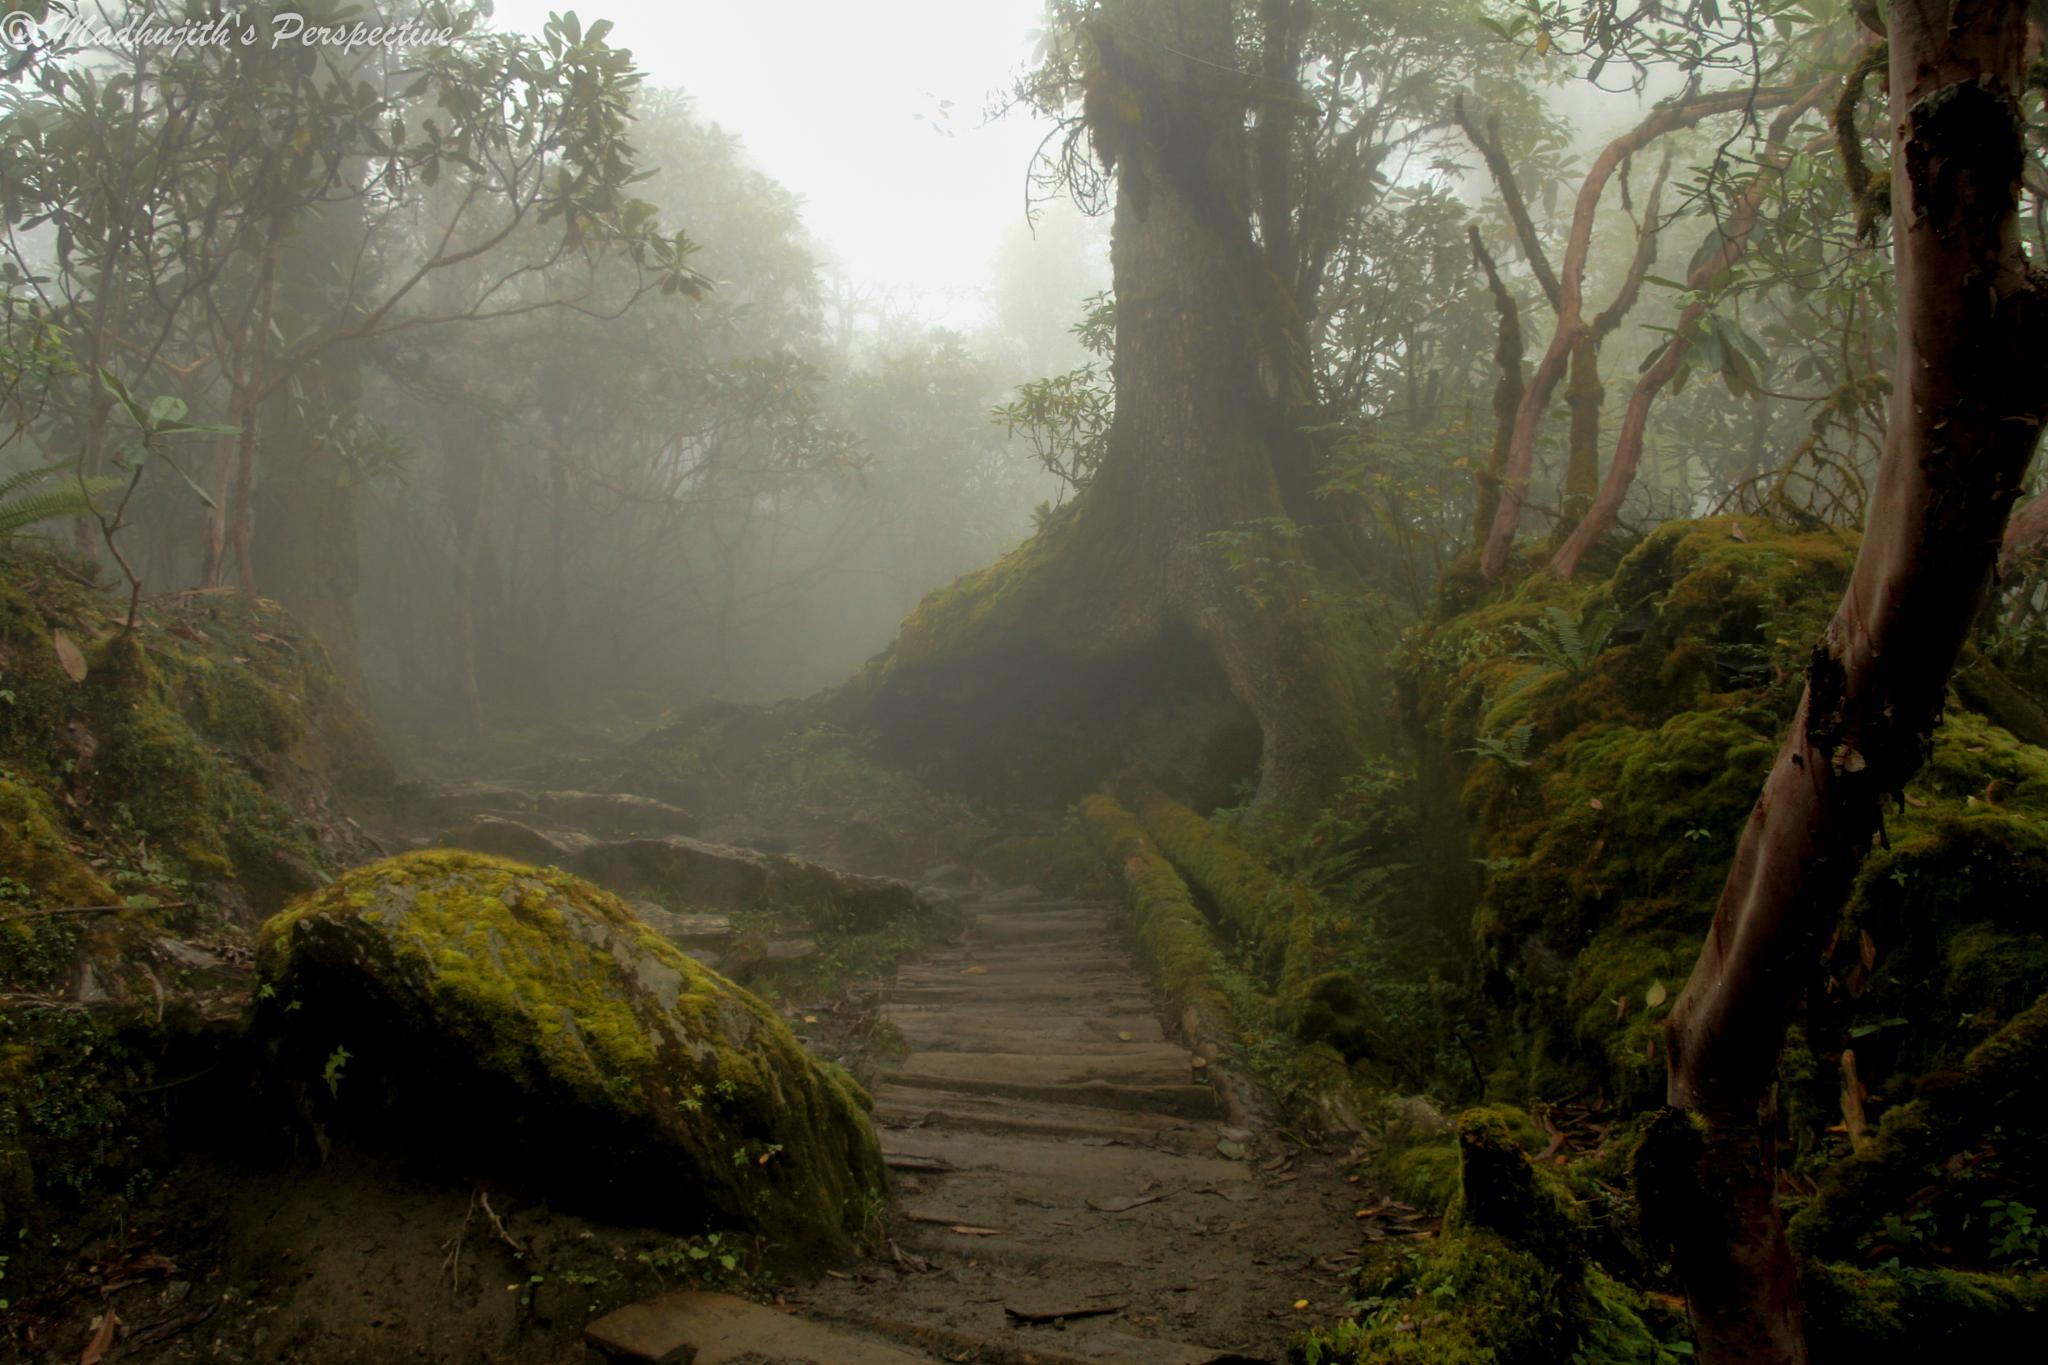 The Mysterious Road by madhujith